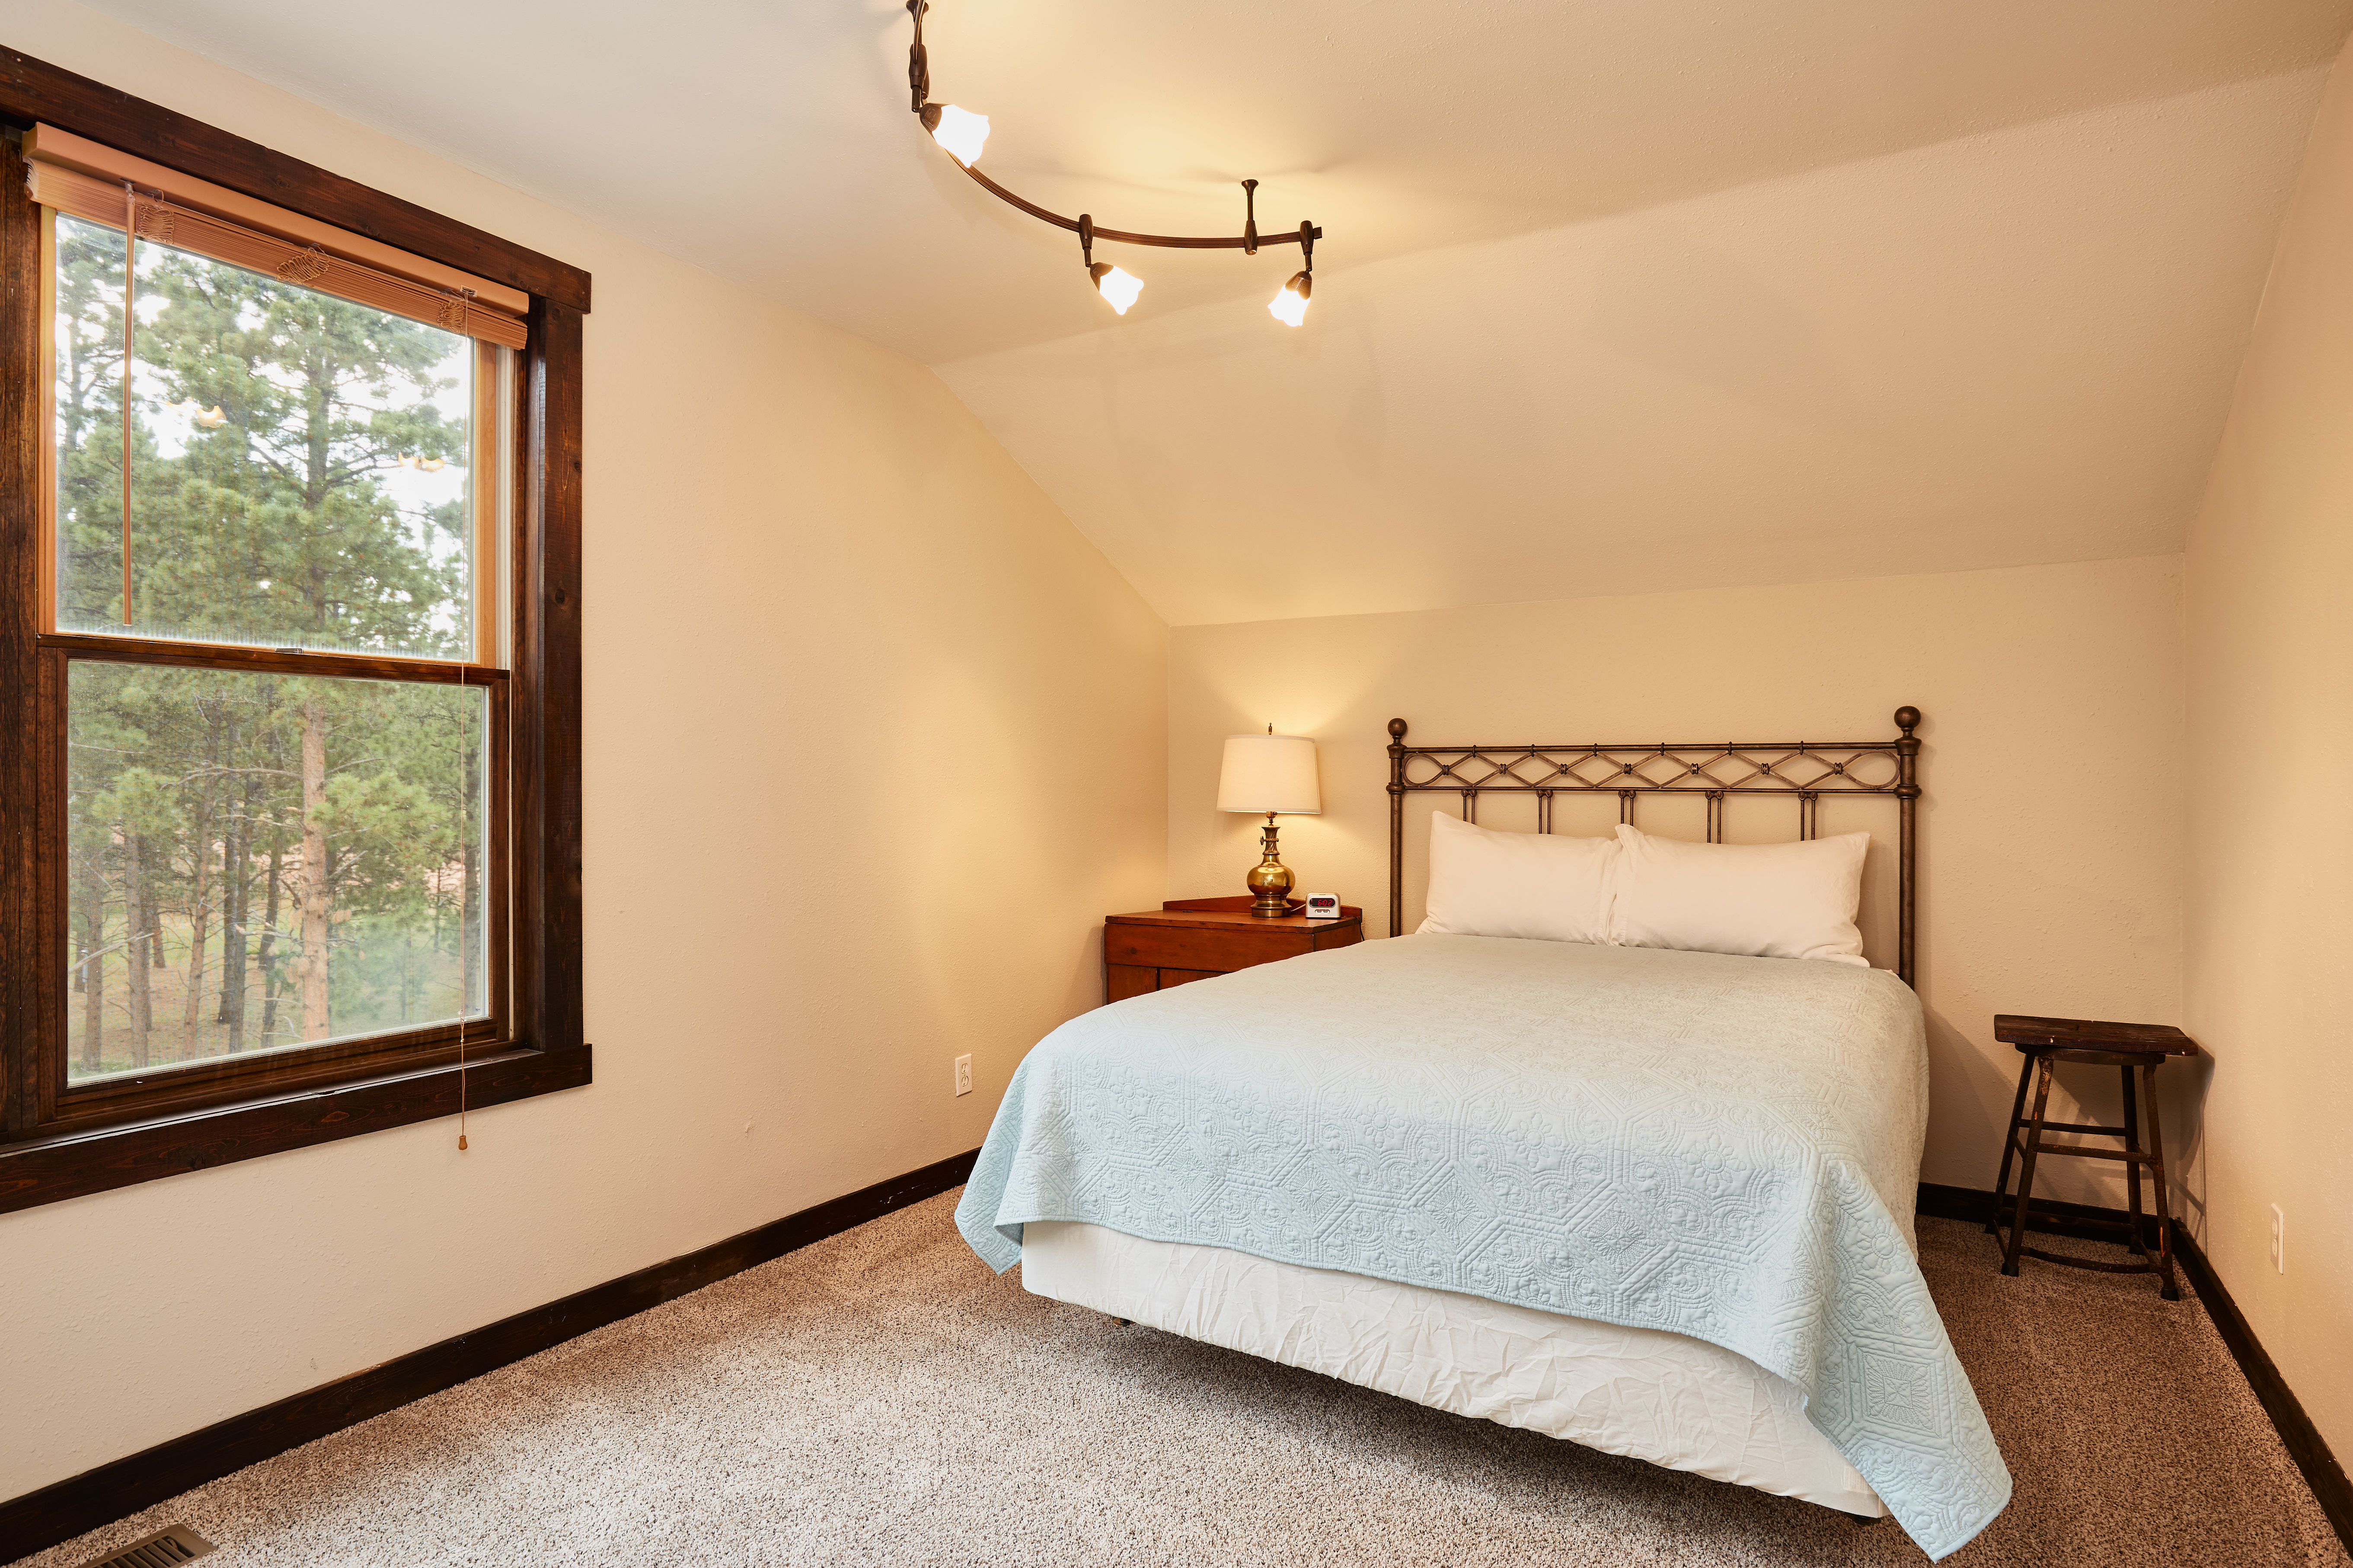 The third upstairs bedroom has also has a queen bed.